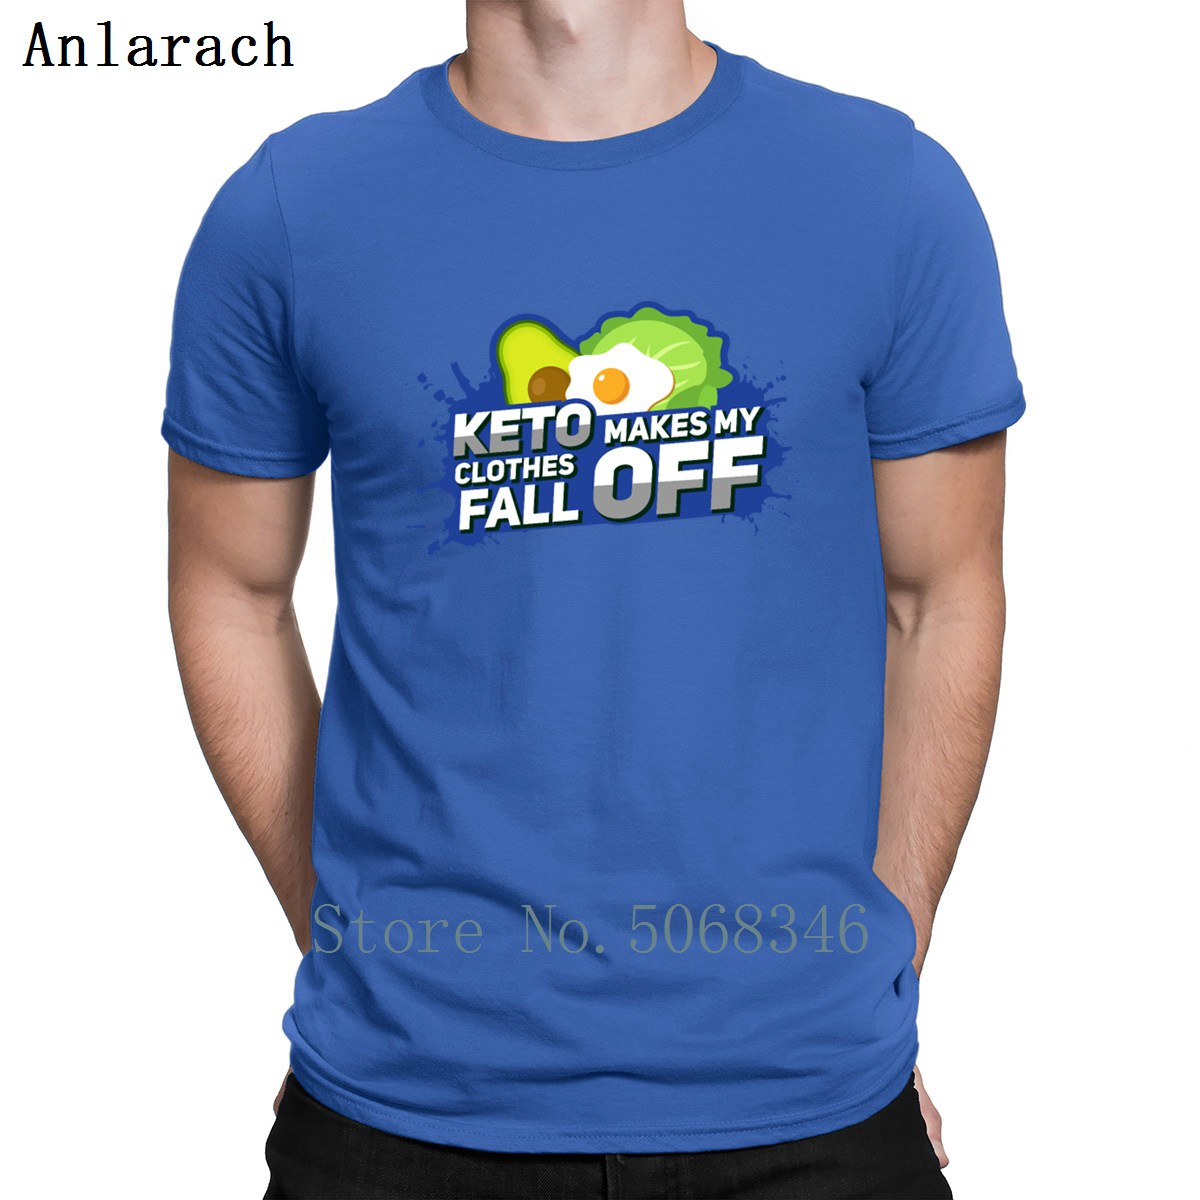 Keto Makes My Clothes Fall Off Ii Gift T Shirt Casual Spring Autumn Letter Round Neck Fitness Cotton Design Pictures Shirt